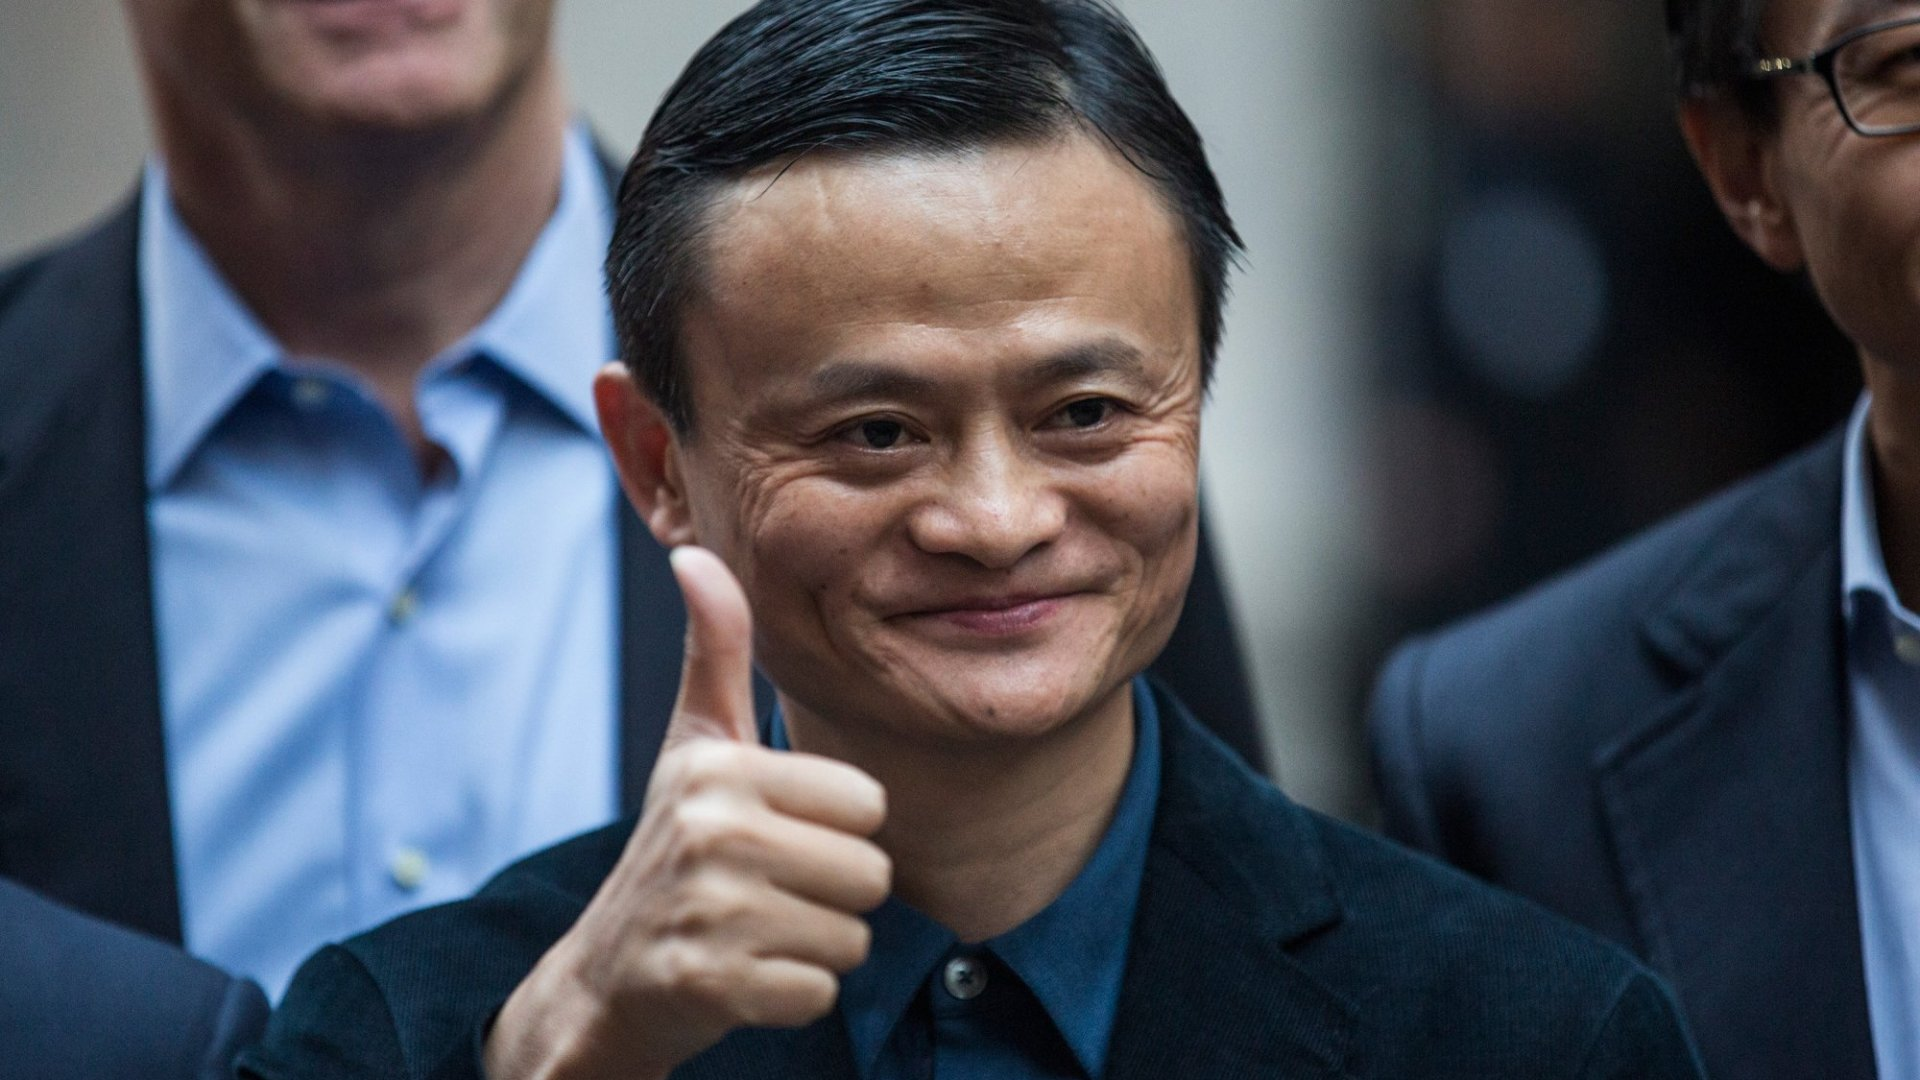 Billionaire Jack Ma Is Getting Ready to Leave Alibaba, and He's Taking a Lesson From Bill Gates's Playbook